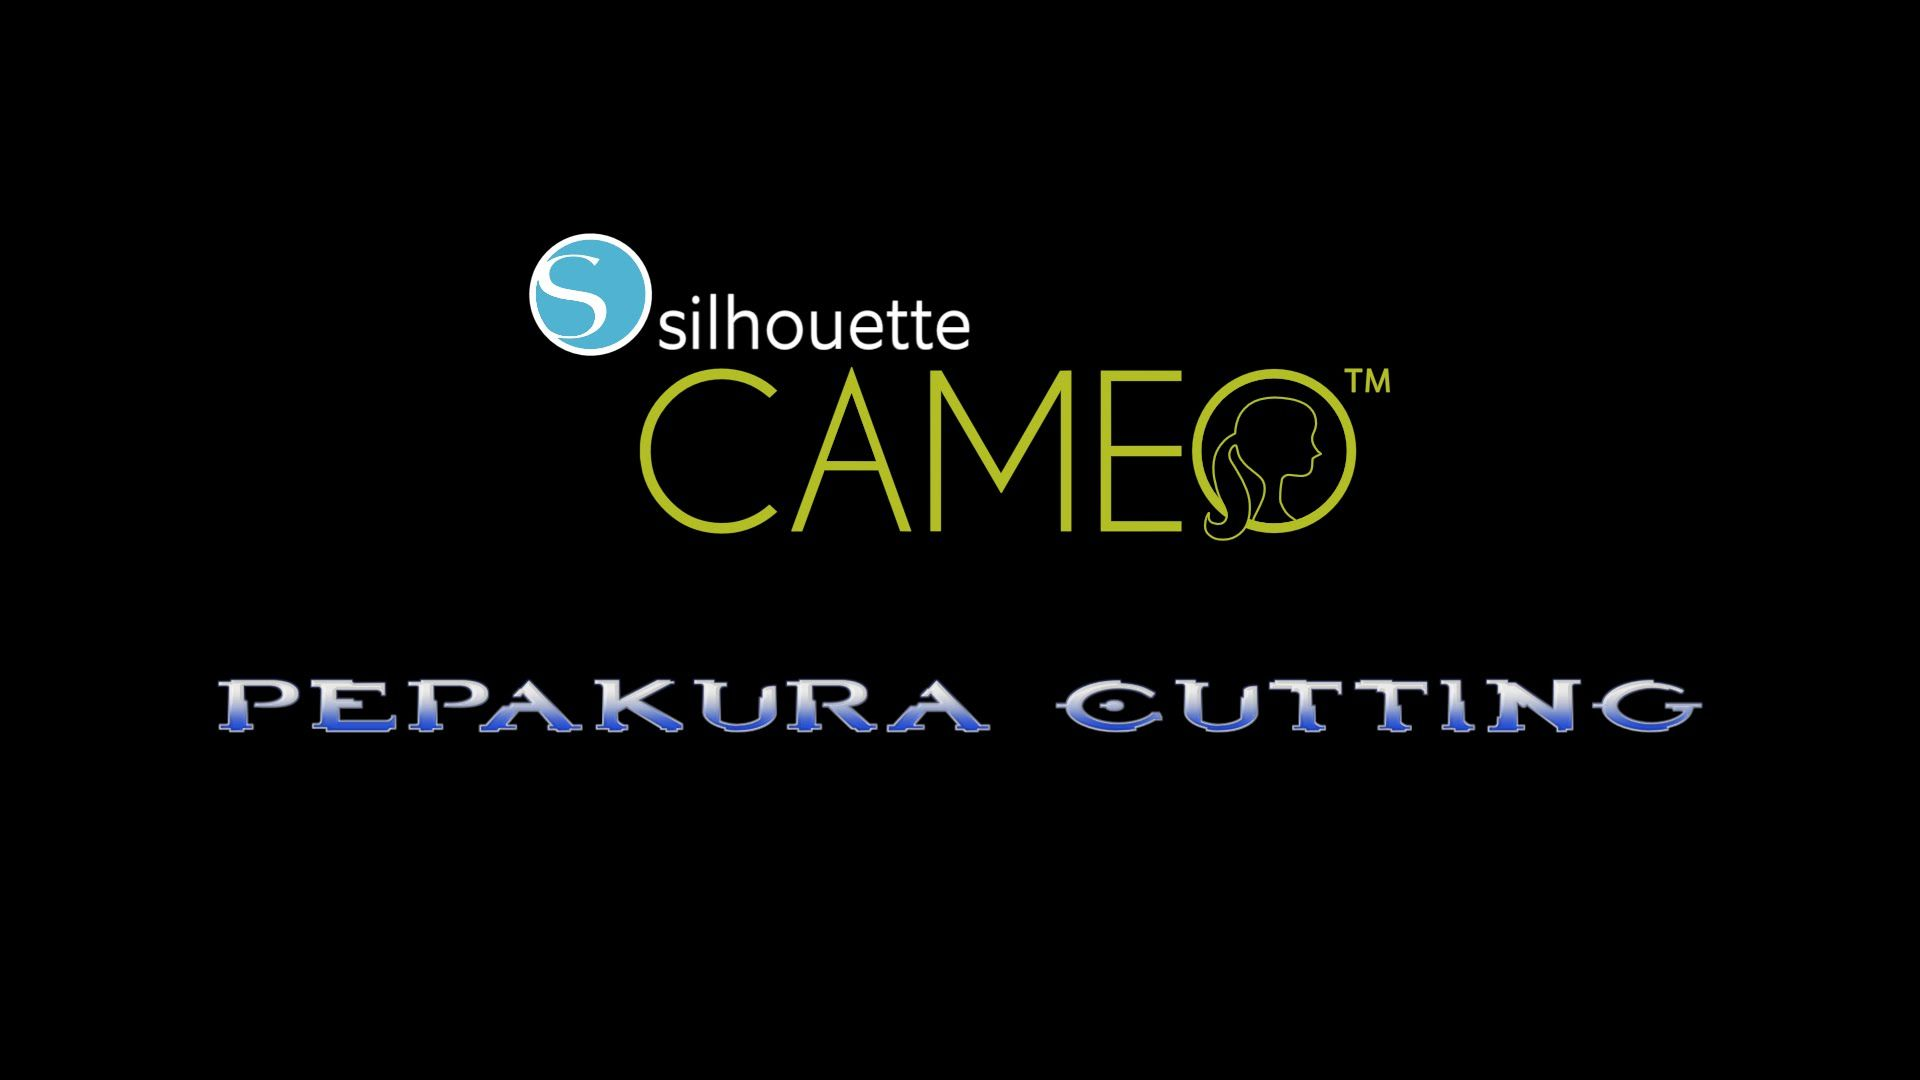 Tutorial For Cutting Pepakura Parts Using A Silhouette Cameo Cutting